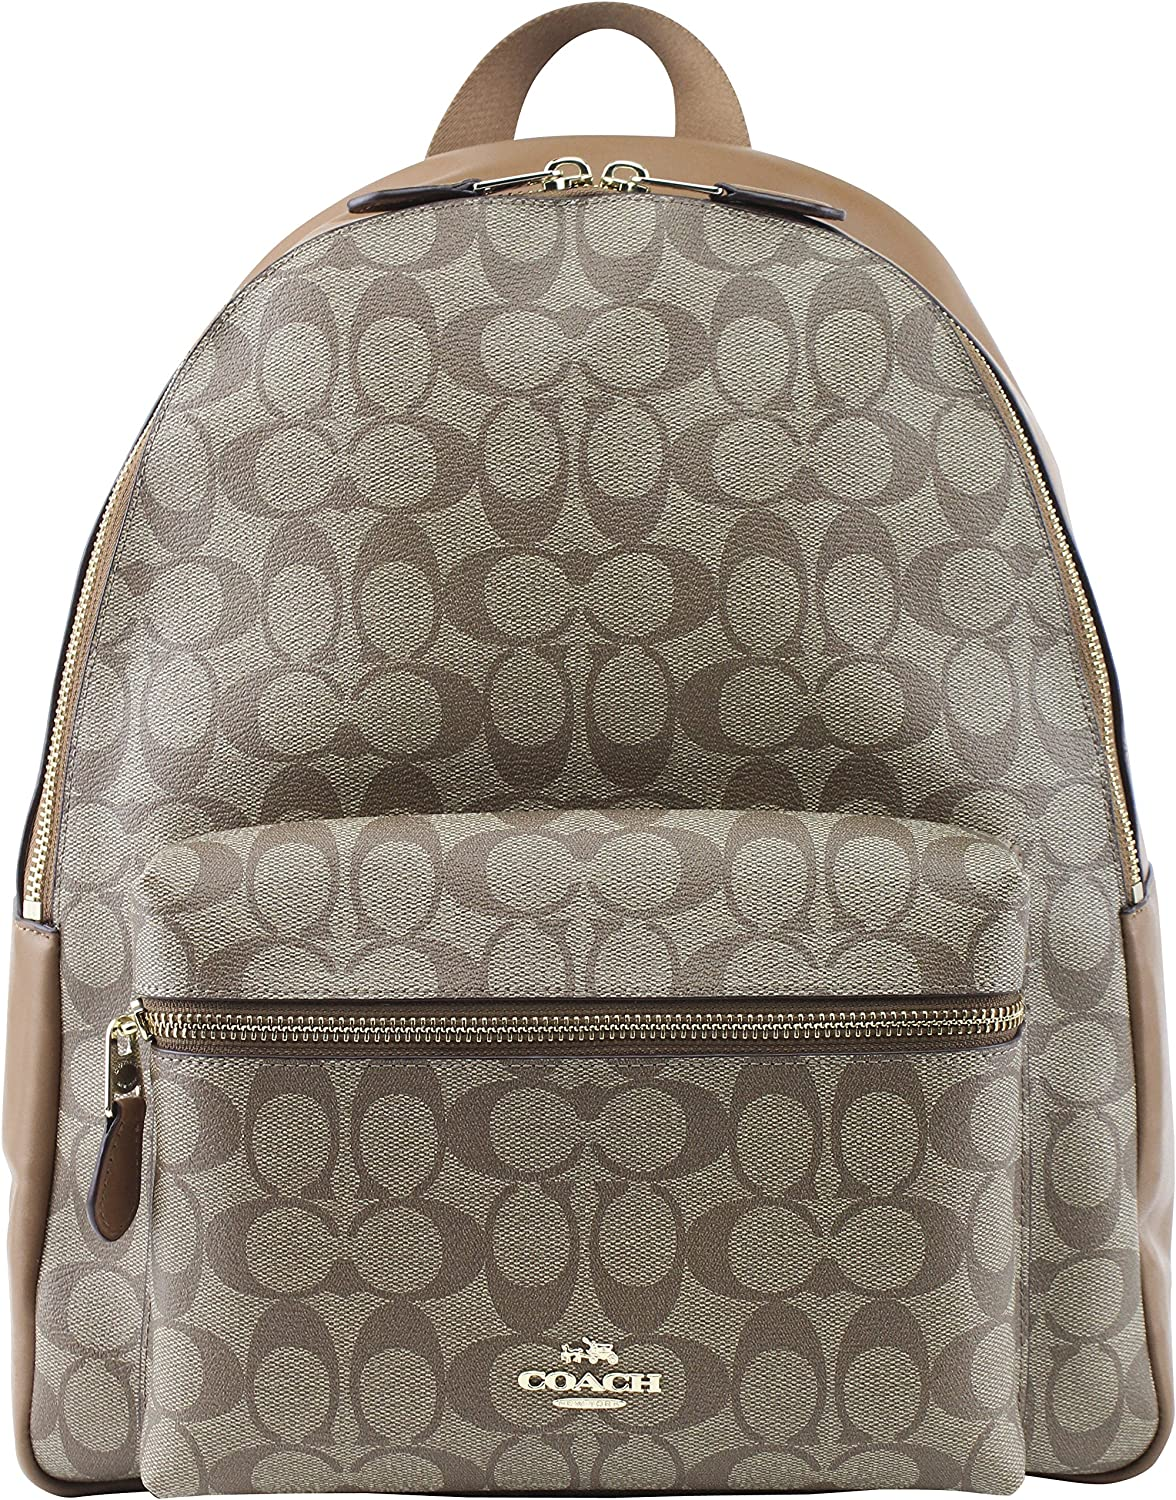 Coach Charlie Signature Pebble Leather Backpack